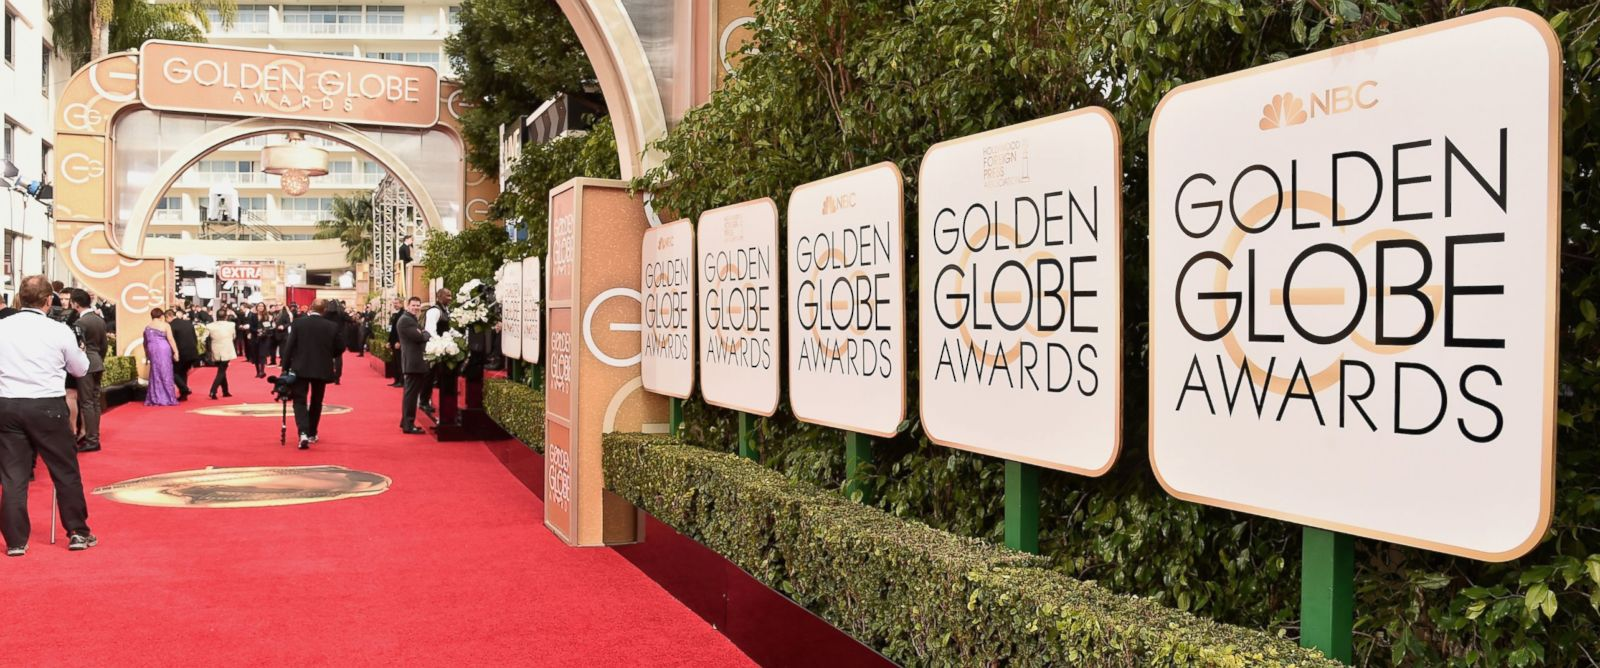 golden_globe_awards